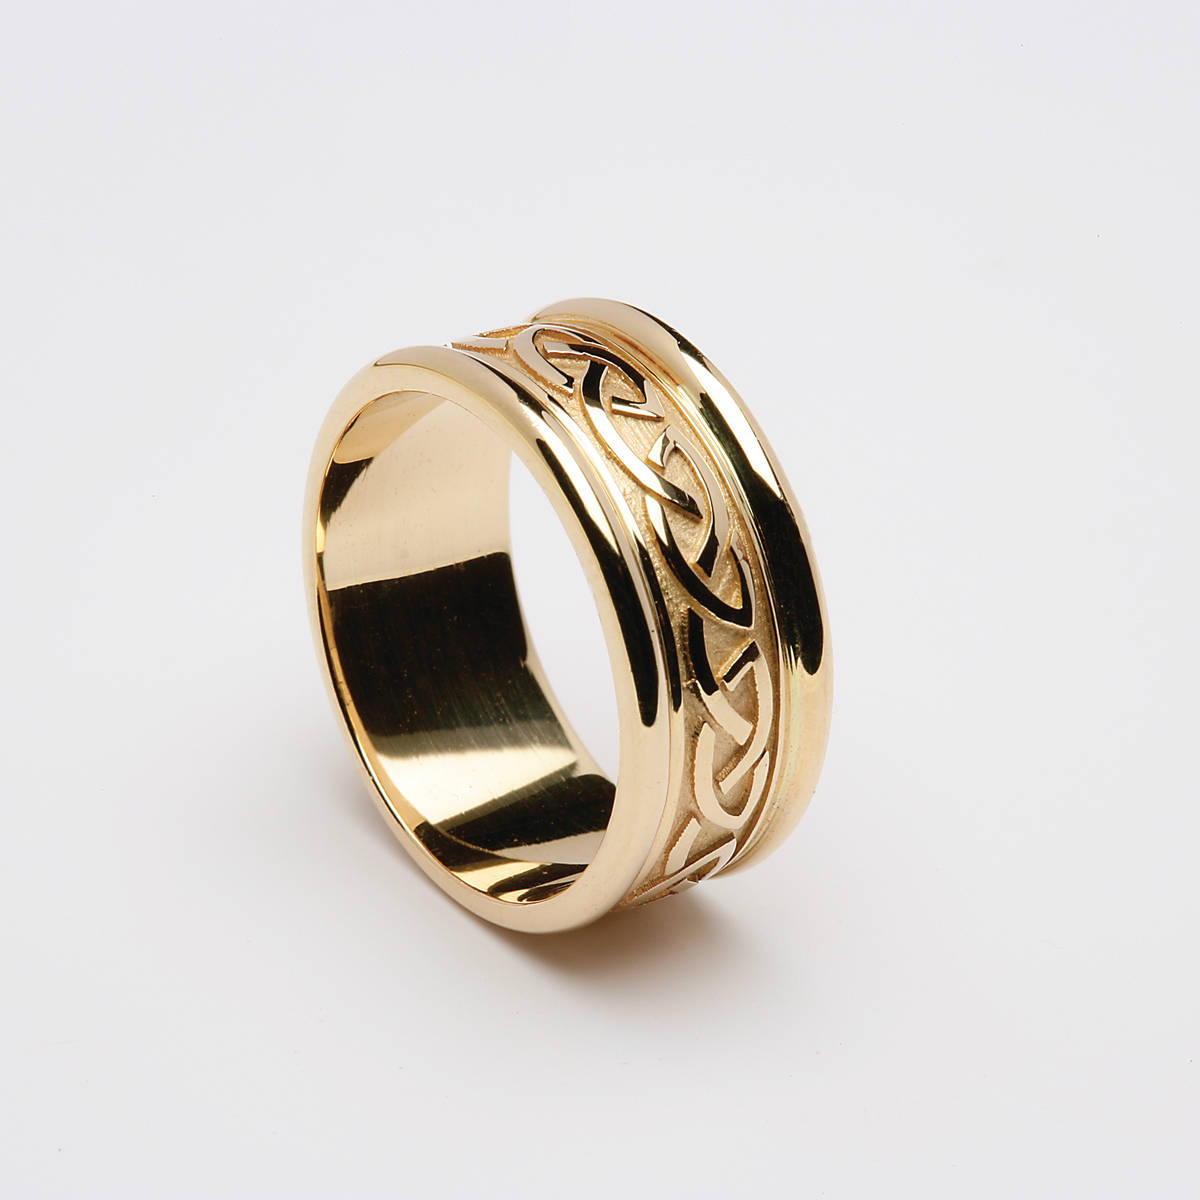 10 carat yellow gold man's Celtic love knot ring